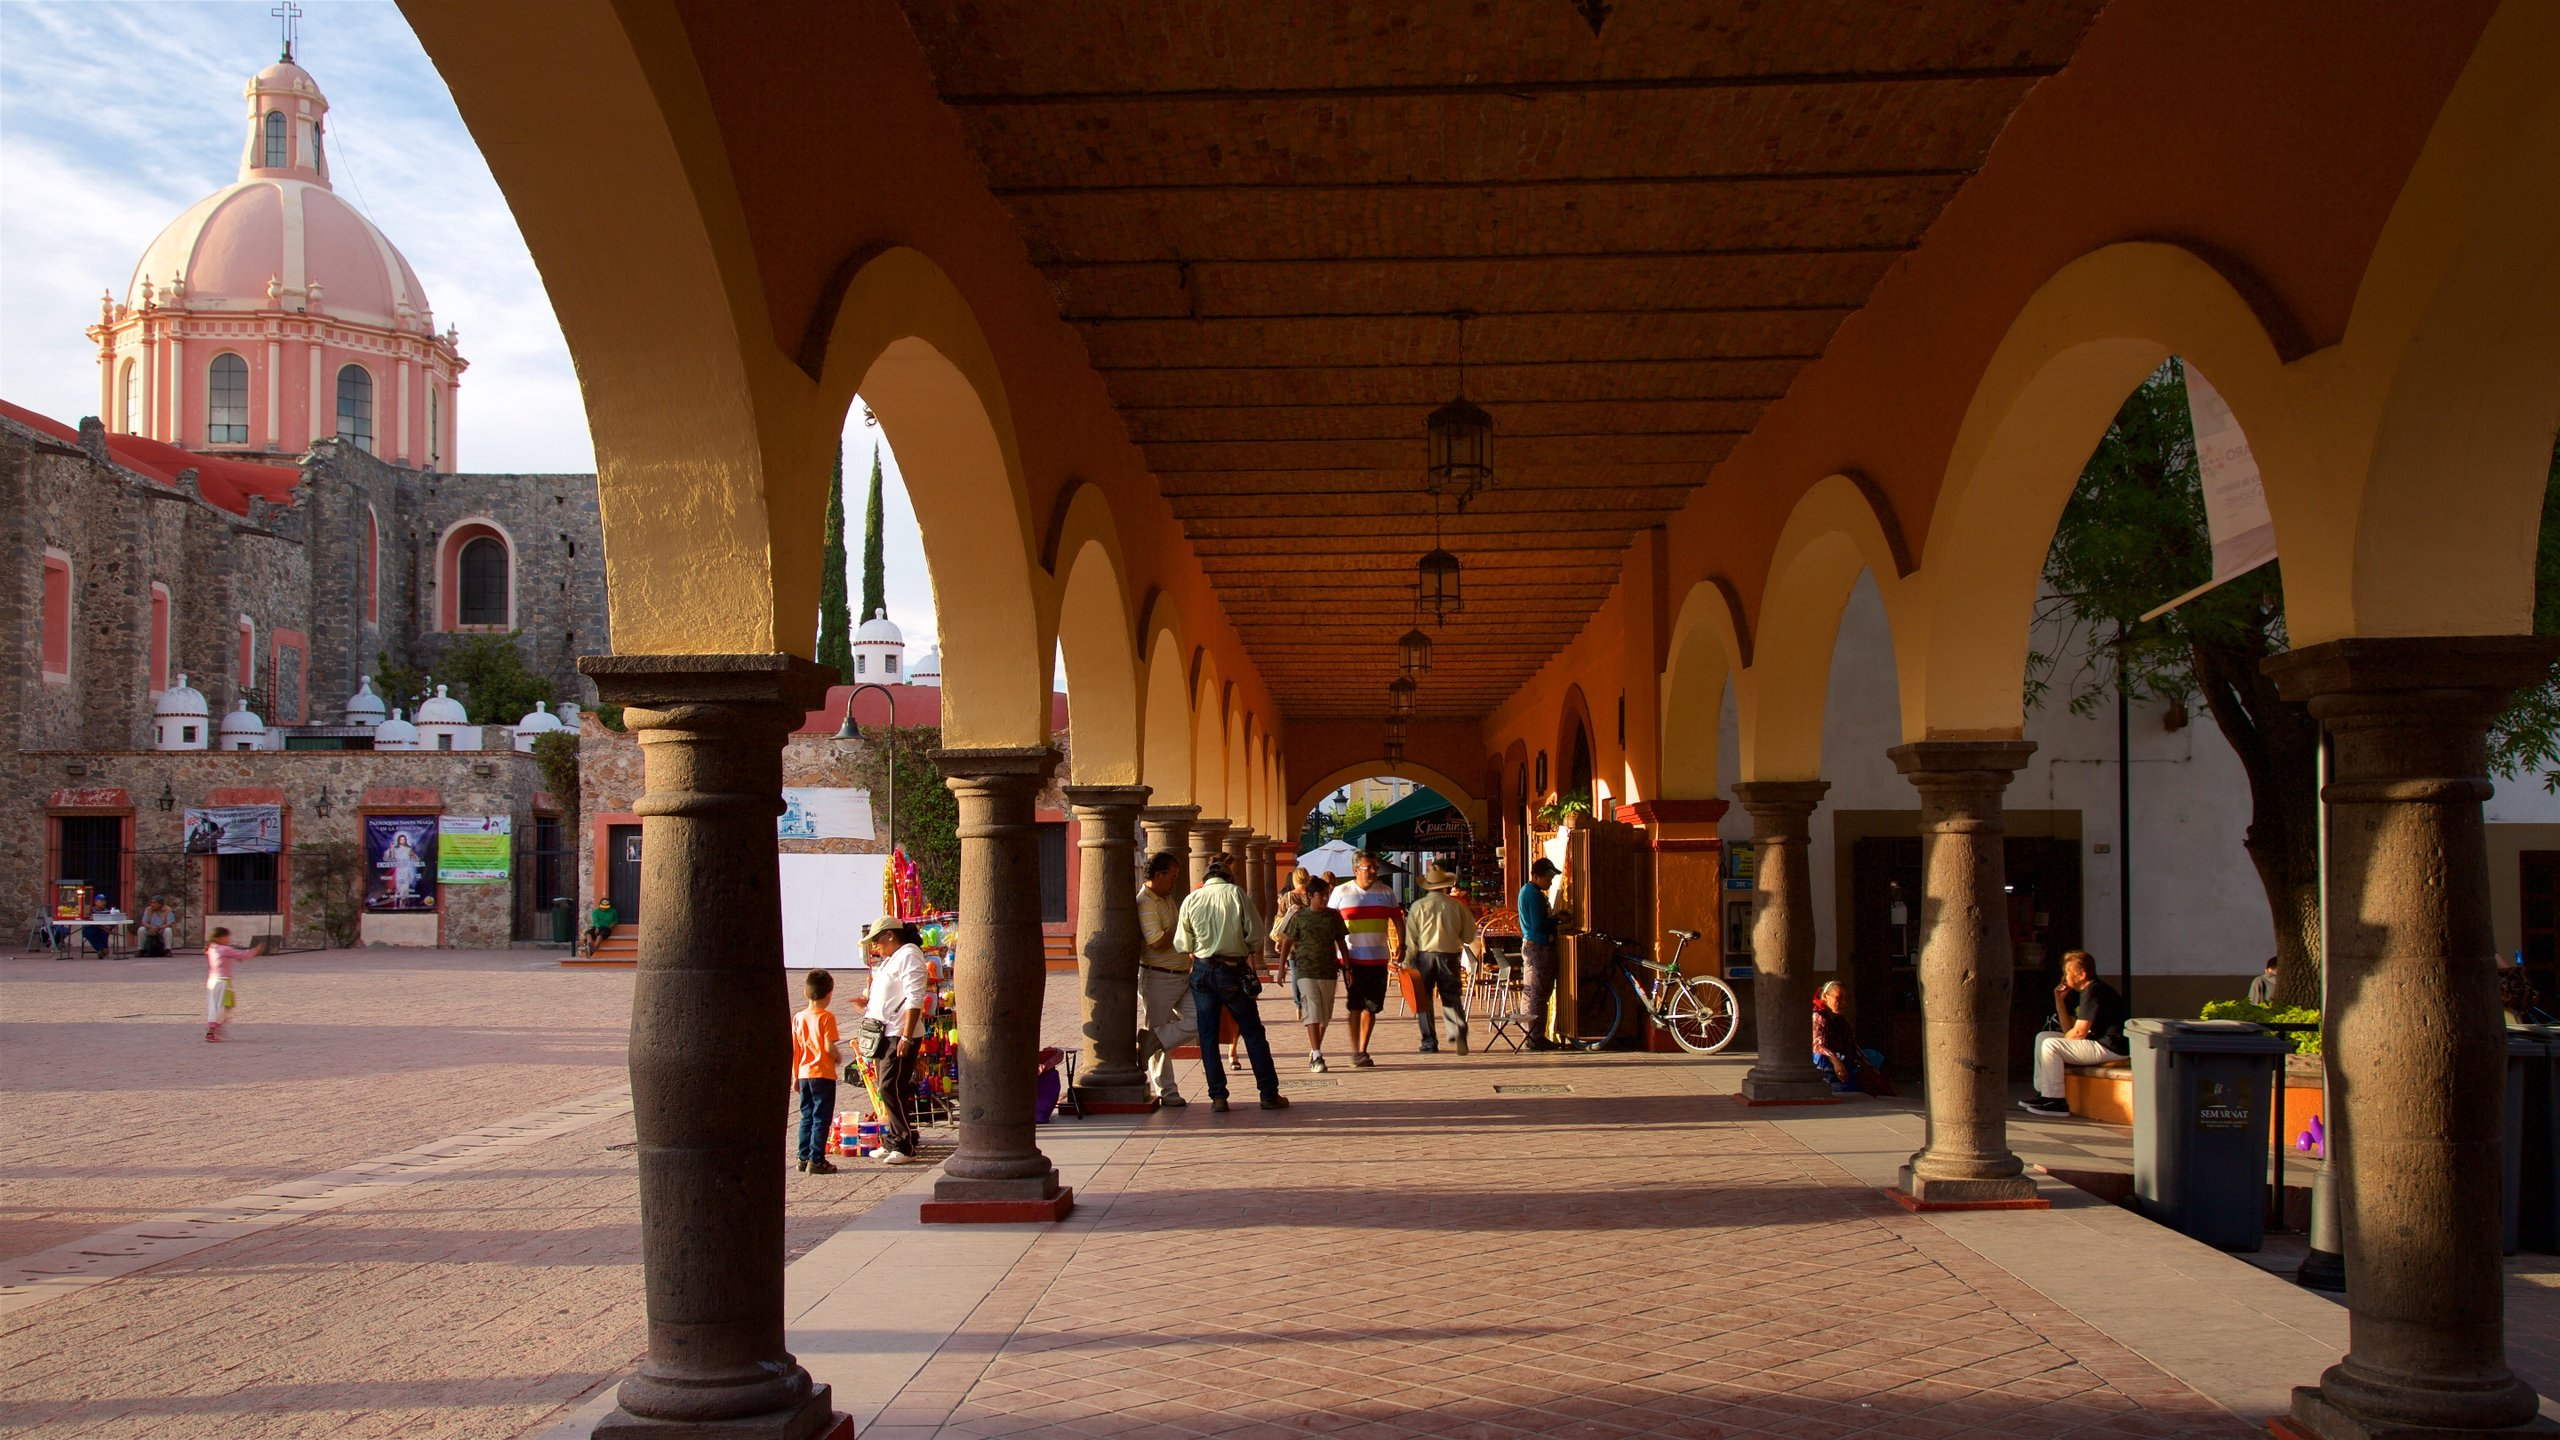 Join locals at this popular, leafy plaza in the heart of colonial Tequisquiapan. It is overlooked by a grand neoclassical church and is the perfect people-watching spot.